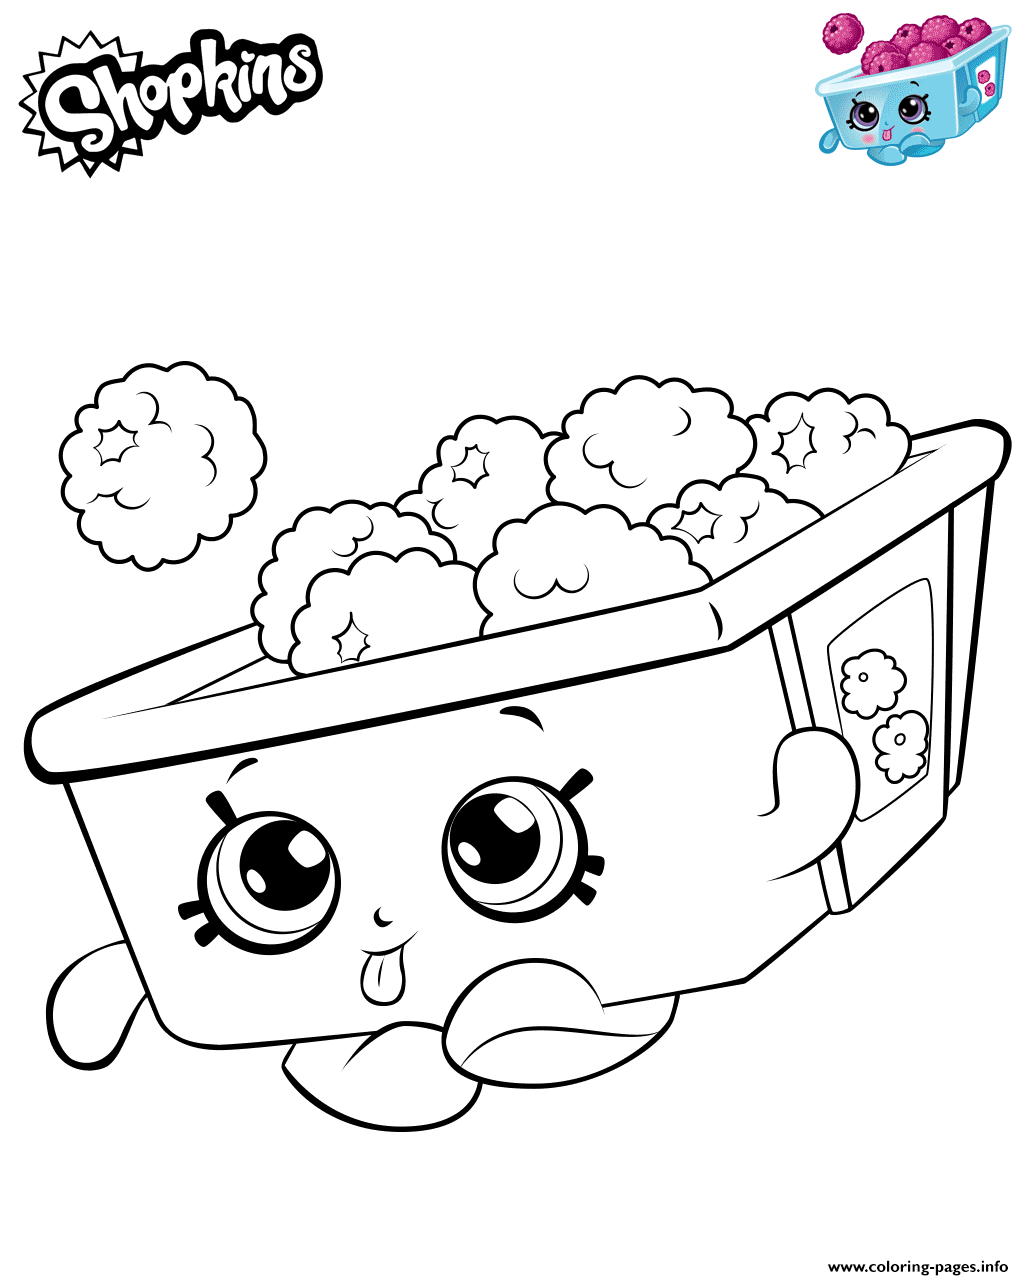 Print Raspberries Shopkins Coloring Pages Shopkins Colouring Pages Cute Coloring Pages Shopkins Colouring Book